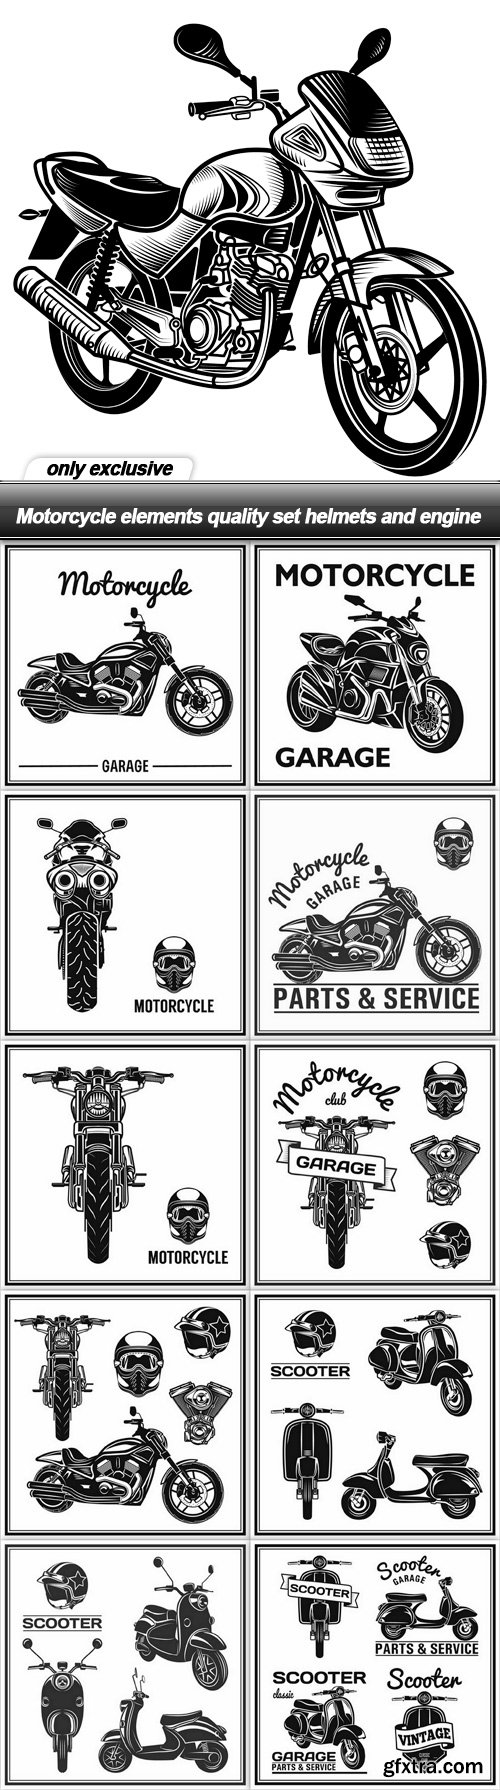 Motorcycle elements quality set helmets and engine - 11 EPS